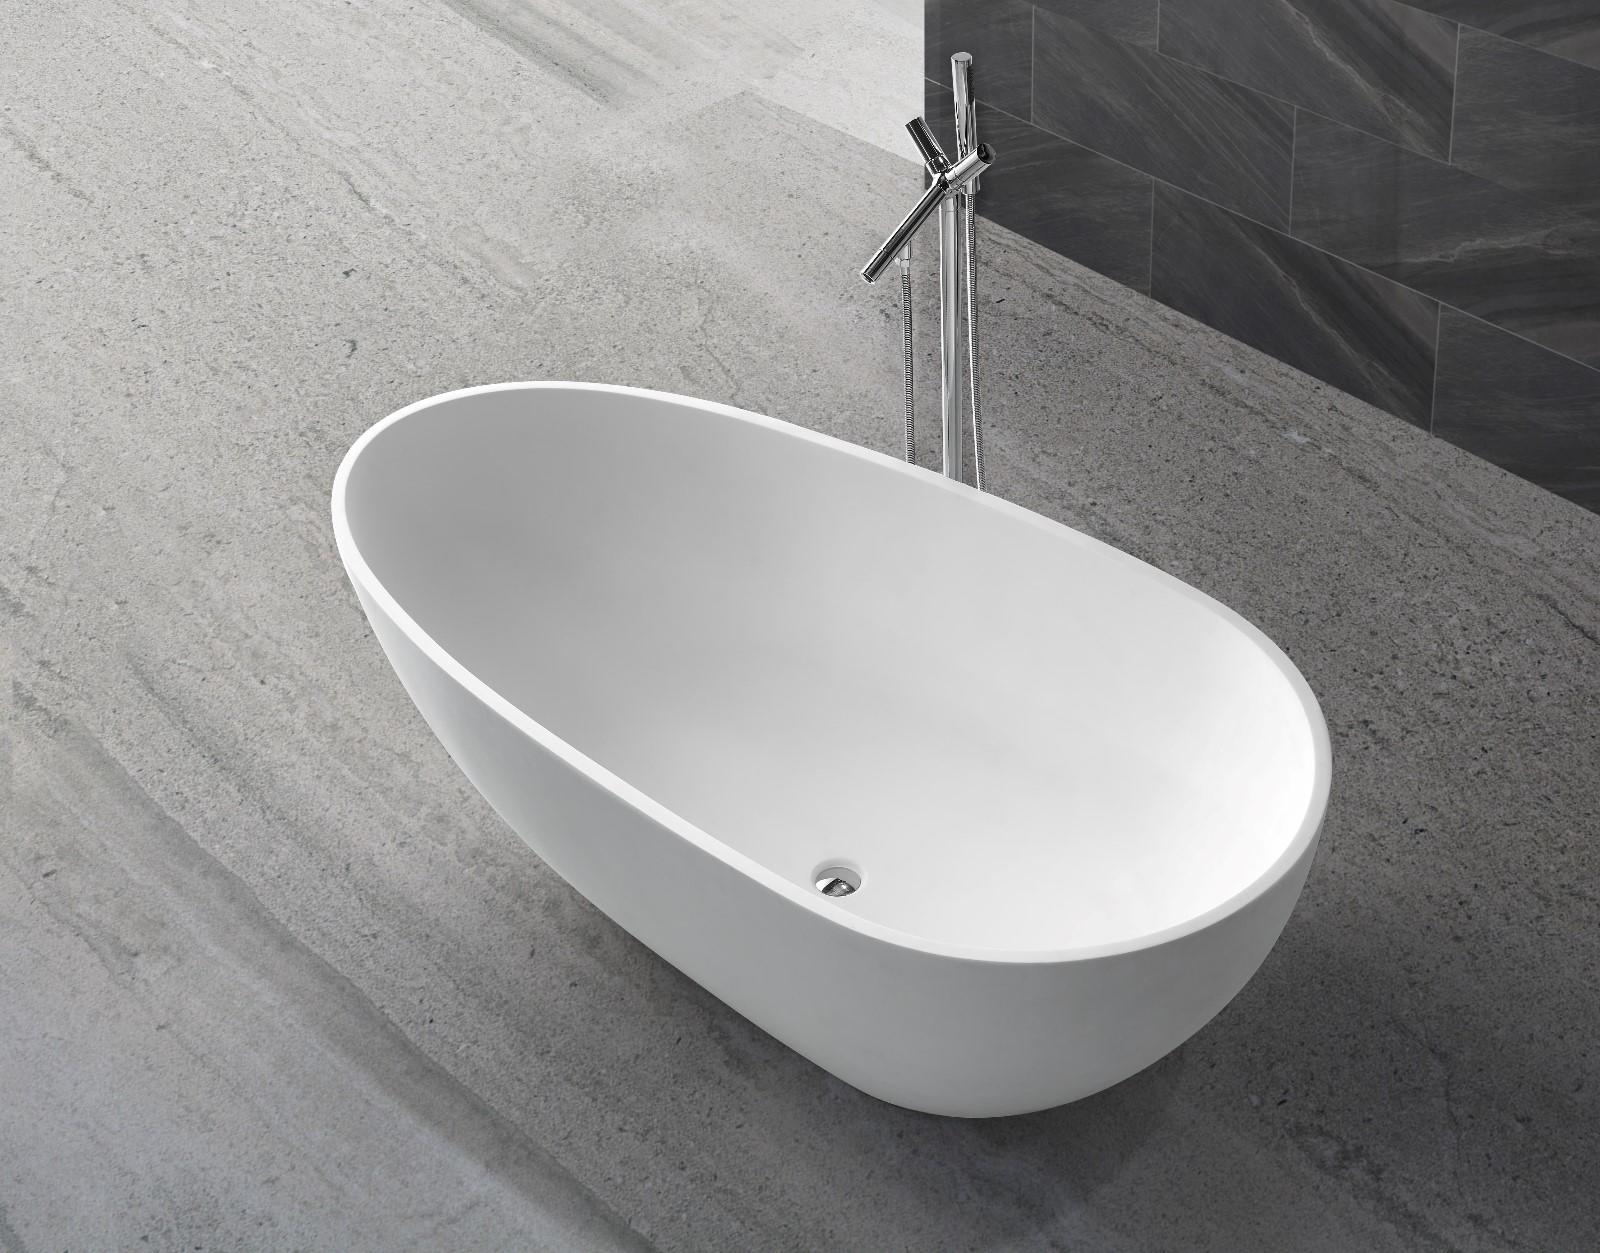 KingKonree resin stone bathtub ODM-1